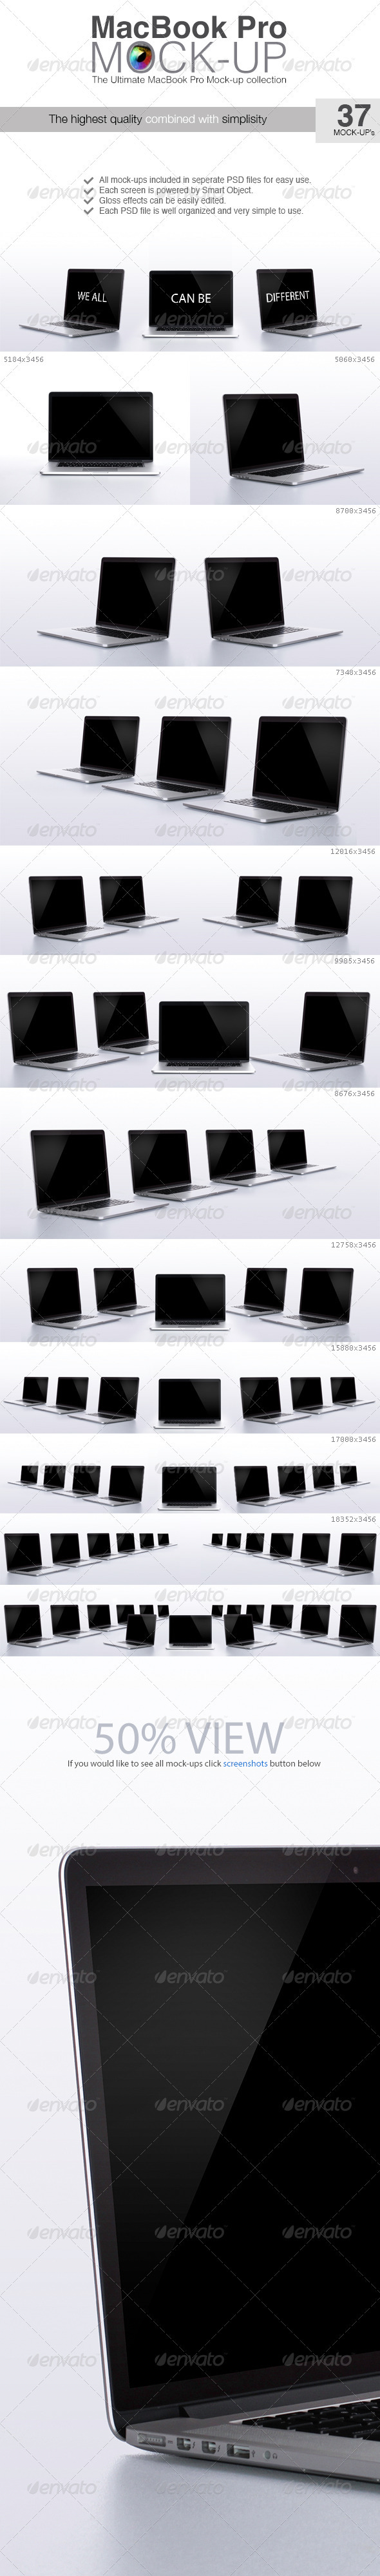 Macbook Pro Mock-up - Laptop Displays